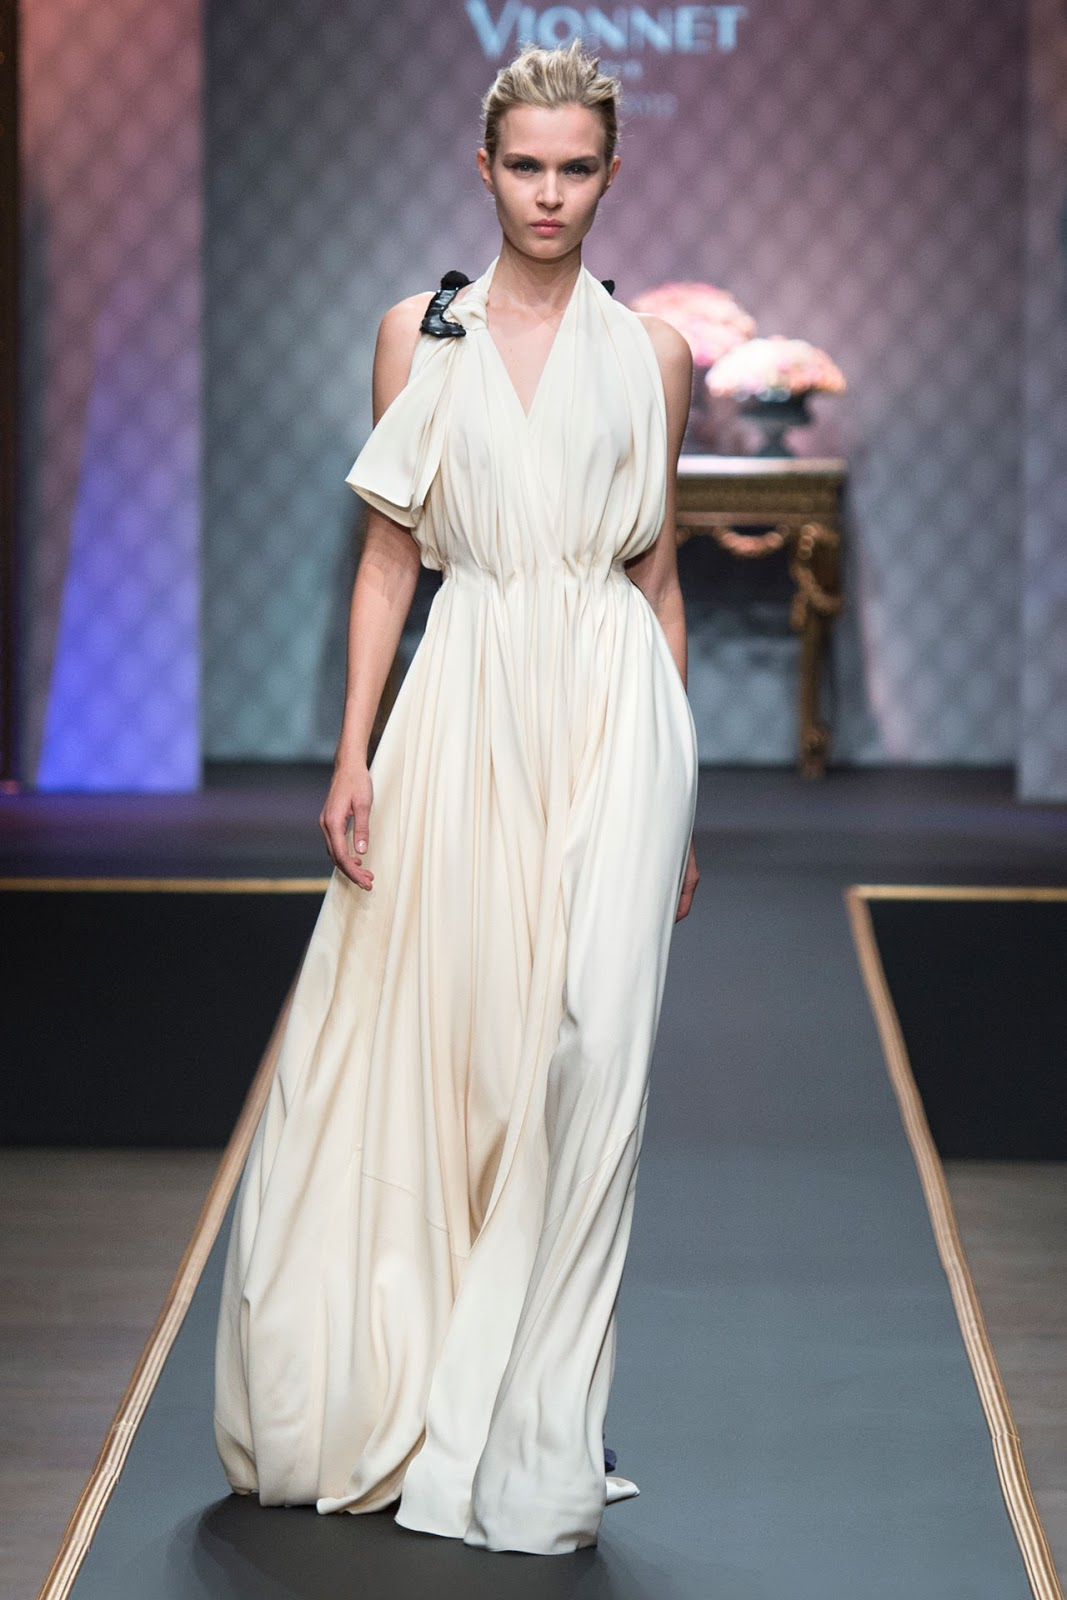 Vionnet demi-couture Spring/Summer 2013 collection